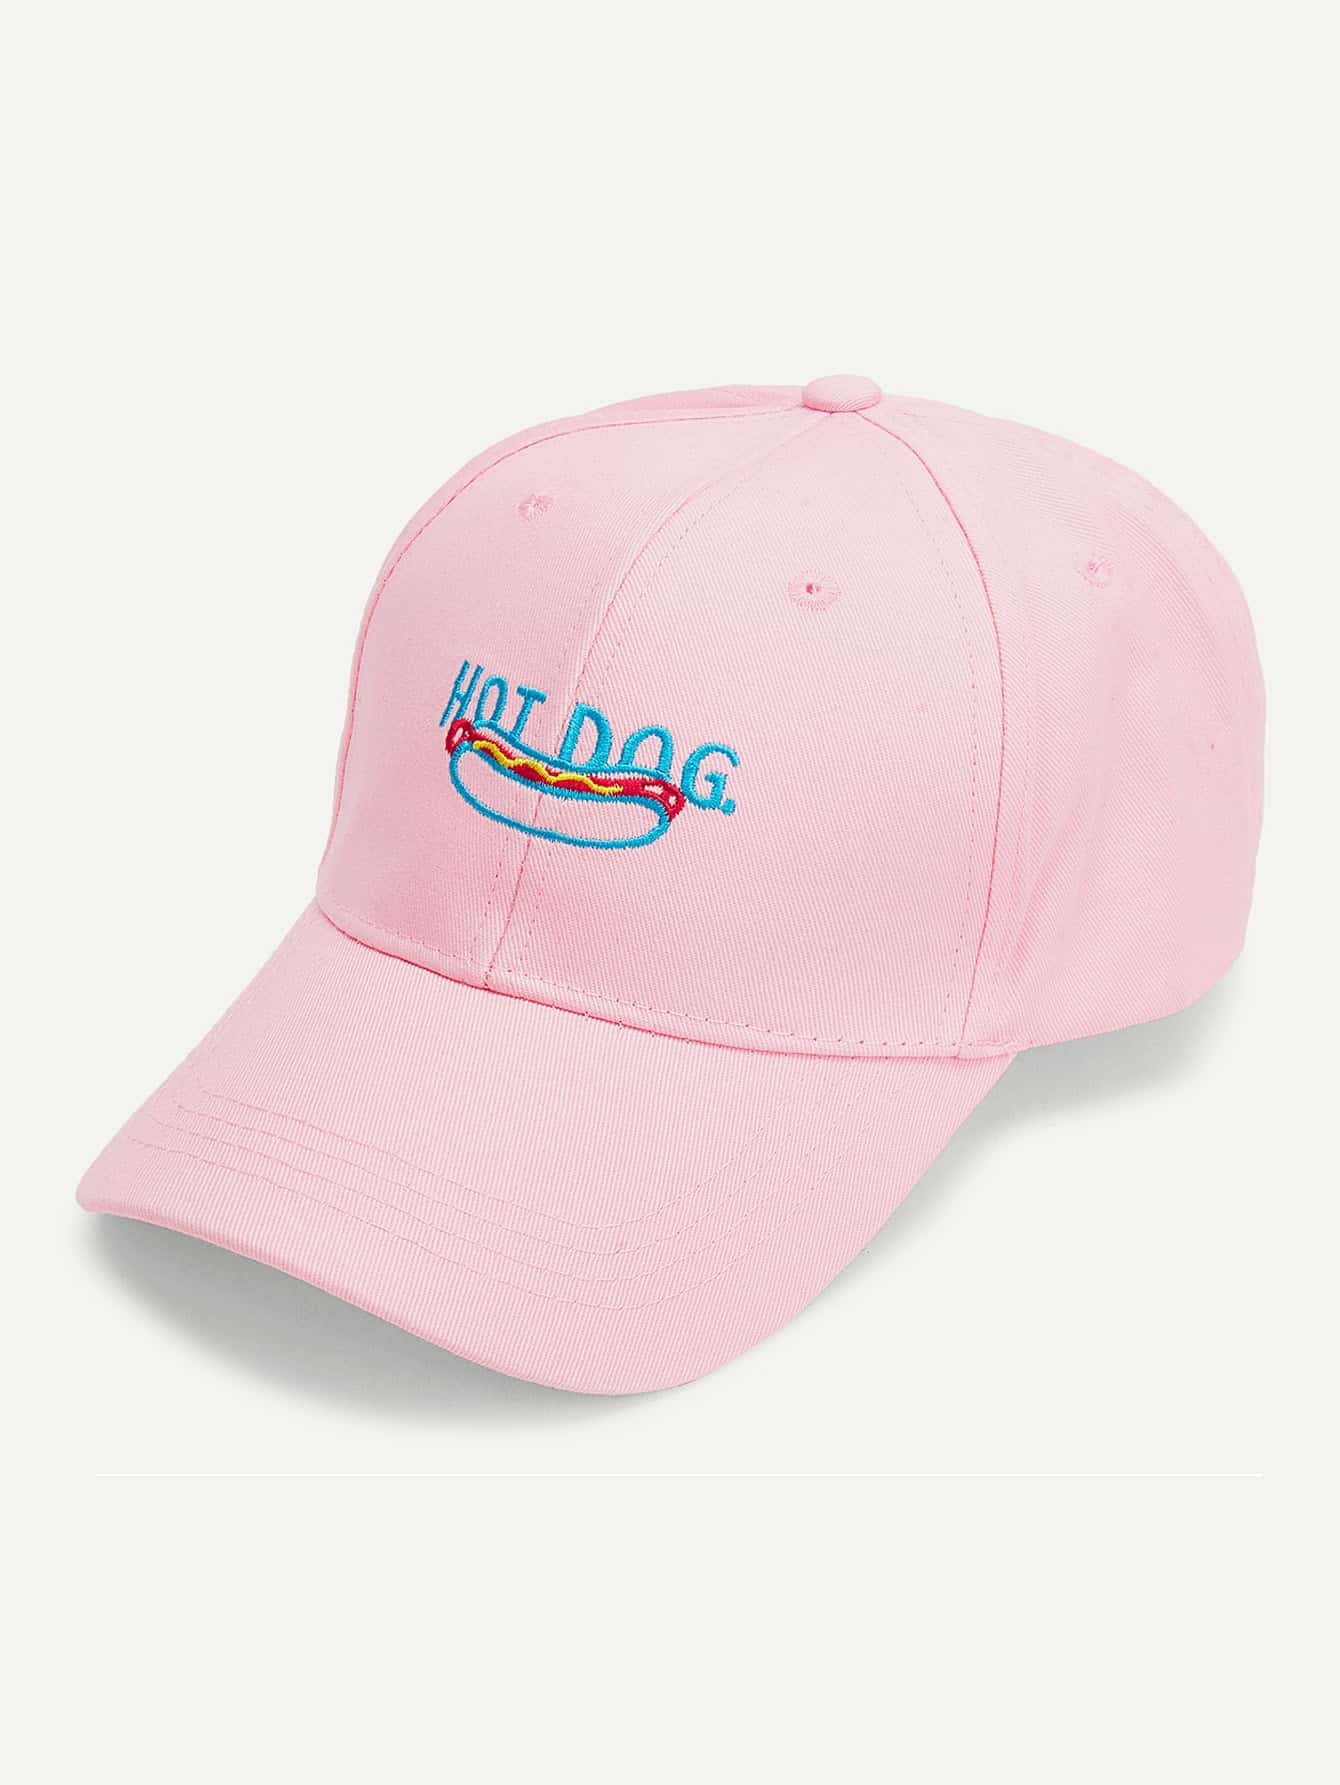 Embroidered Food Baseball Cap 2016 feammal new rose floral embroidered casquette polos baseball caps cotton strapback black pink rose for women sport cap